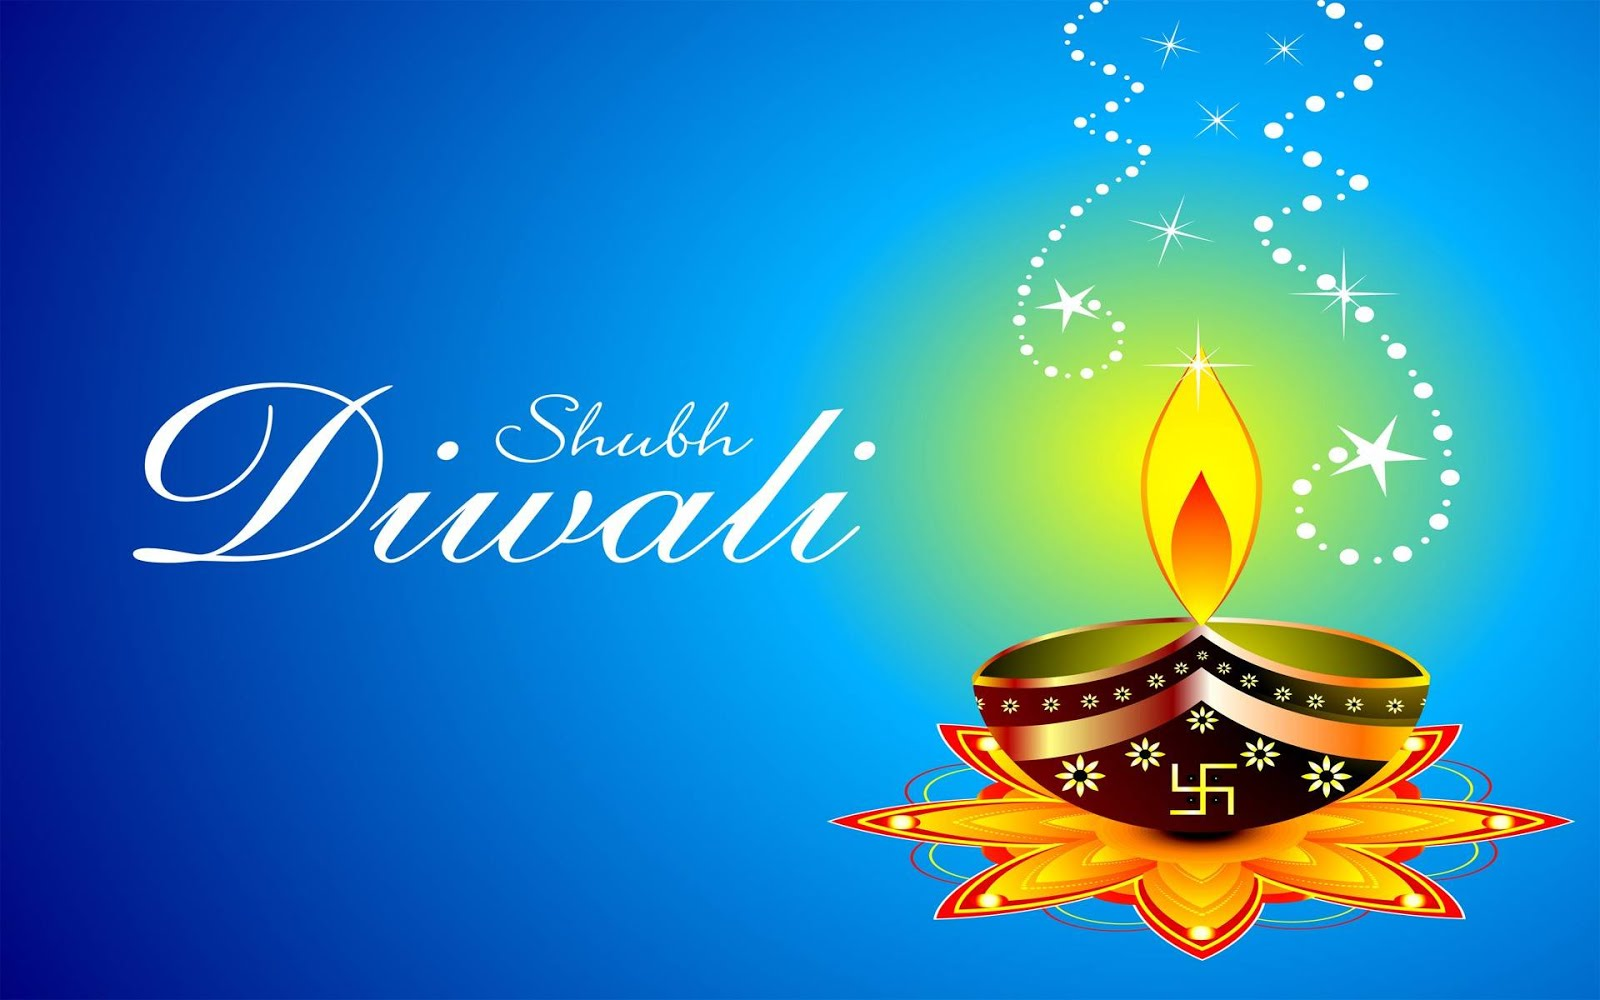 Diwali Photos Free Download